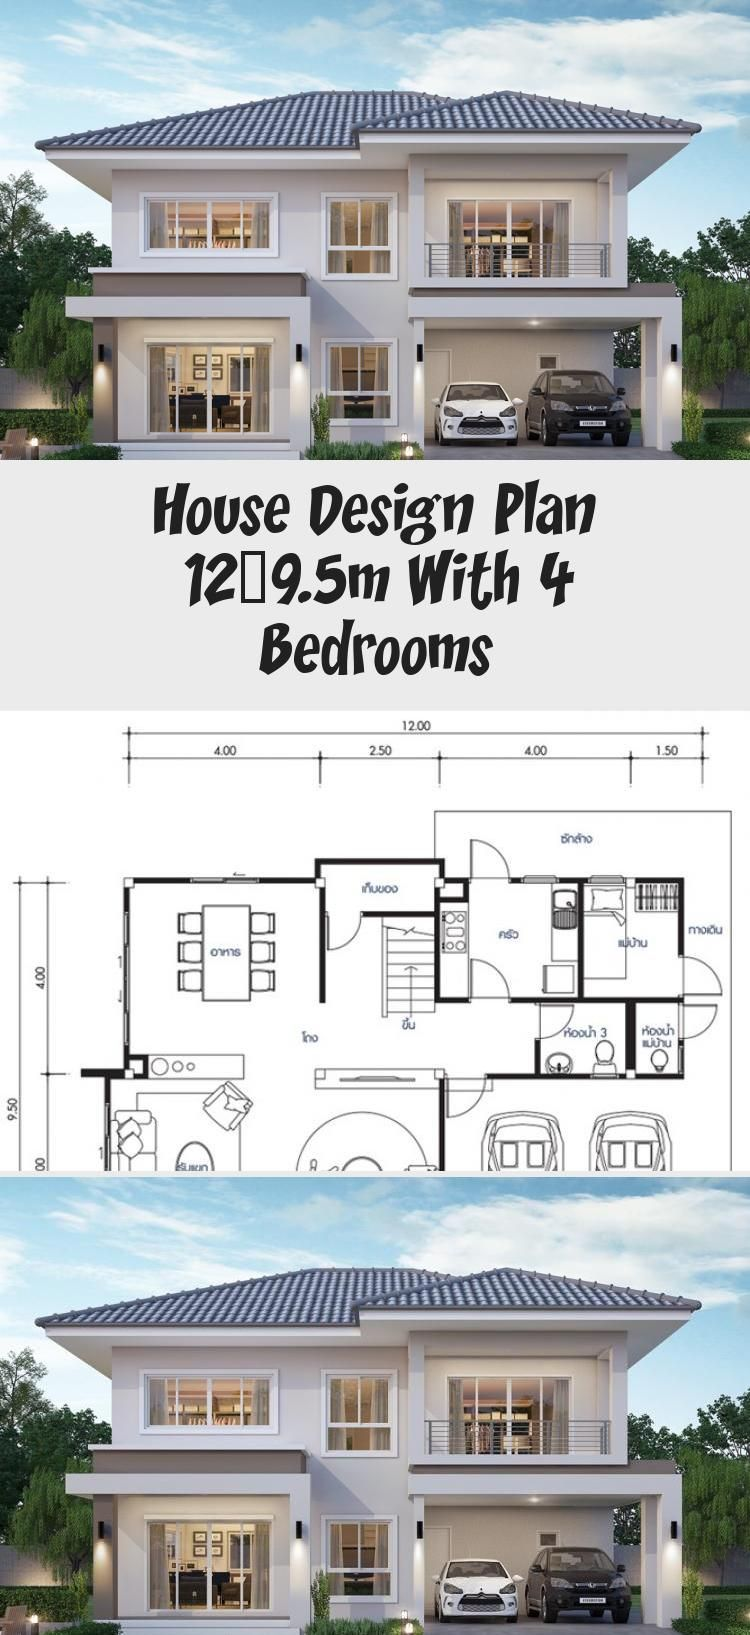 House Design Plan 12x9 5m With 4 Bedrooms Home Design With Plansearch Houseplansireland Bungalowhous In 2020 Home Design Plans Brick House Plans House Layout Plans